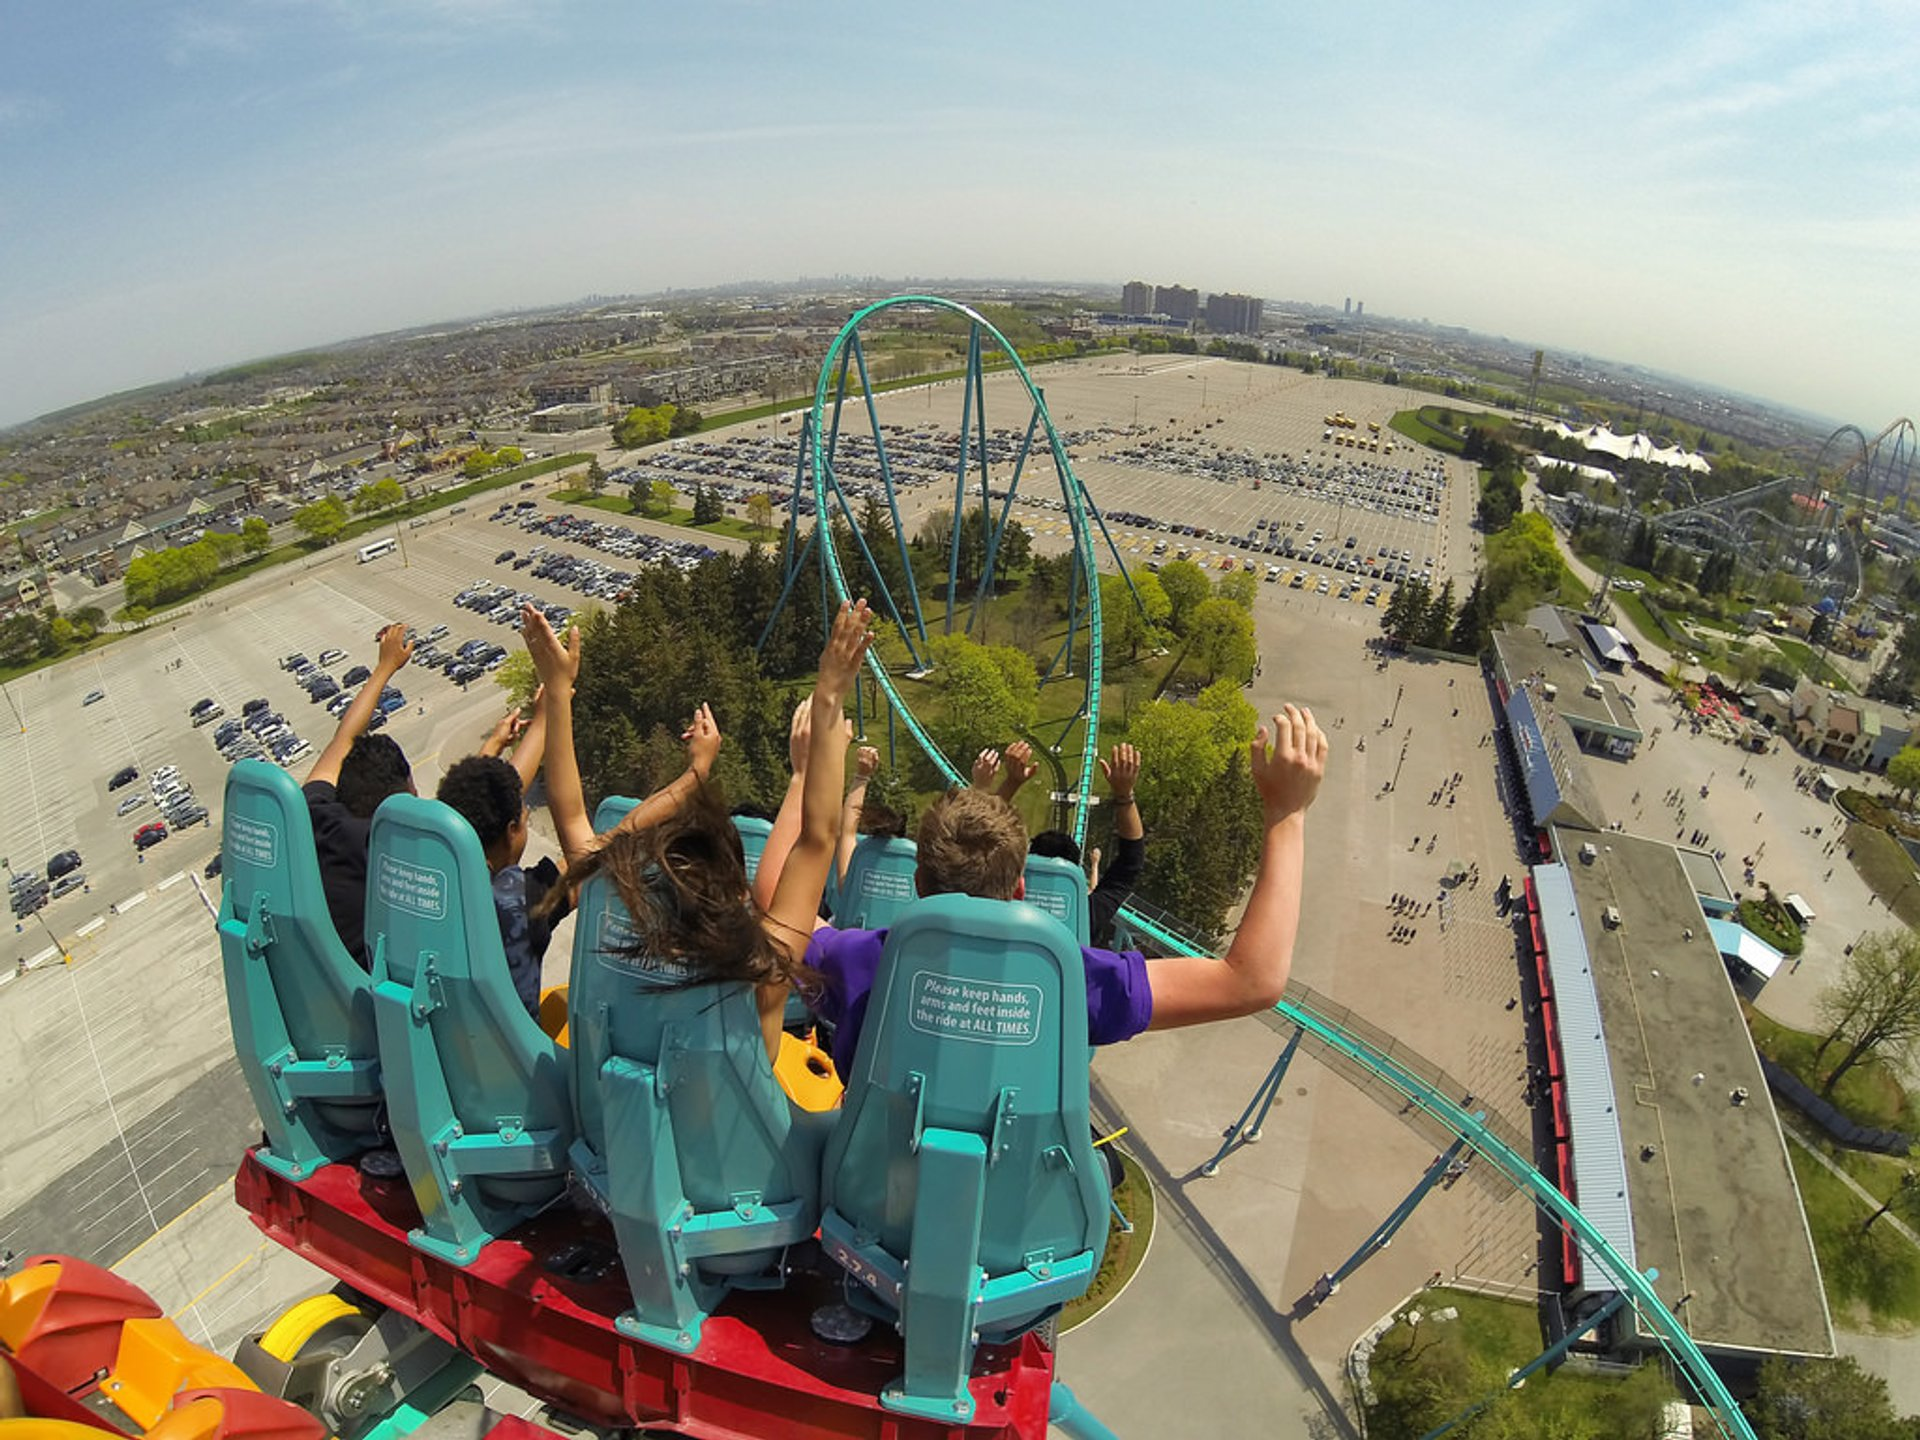 Canada's Wonderland in Toronto 2020 - Best Time